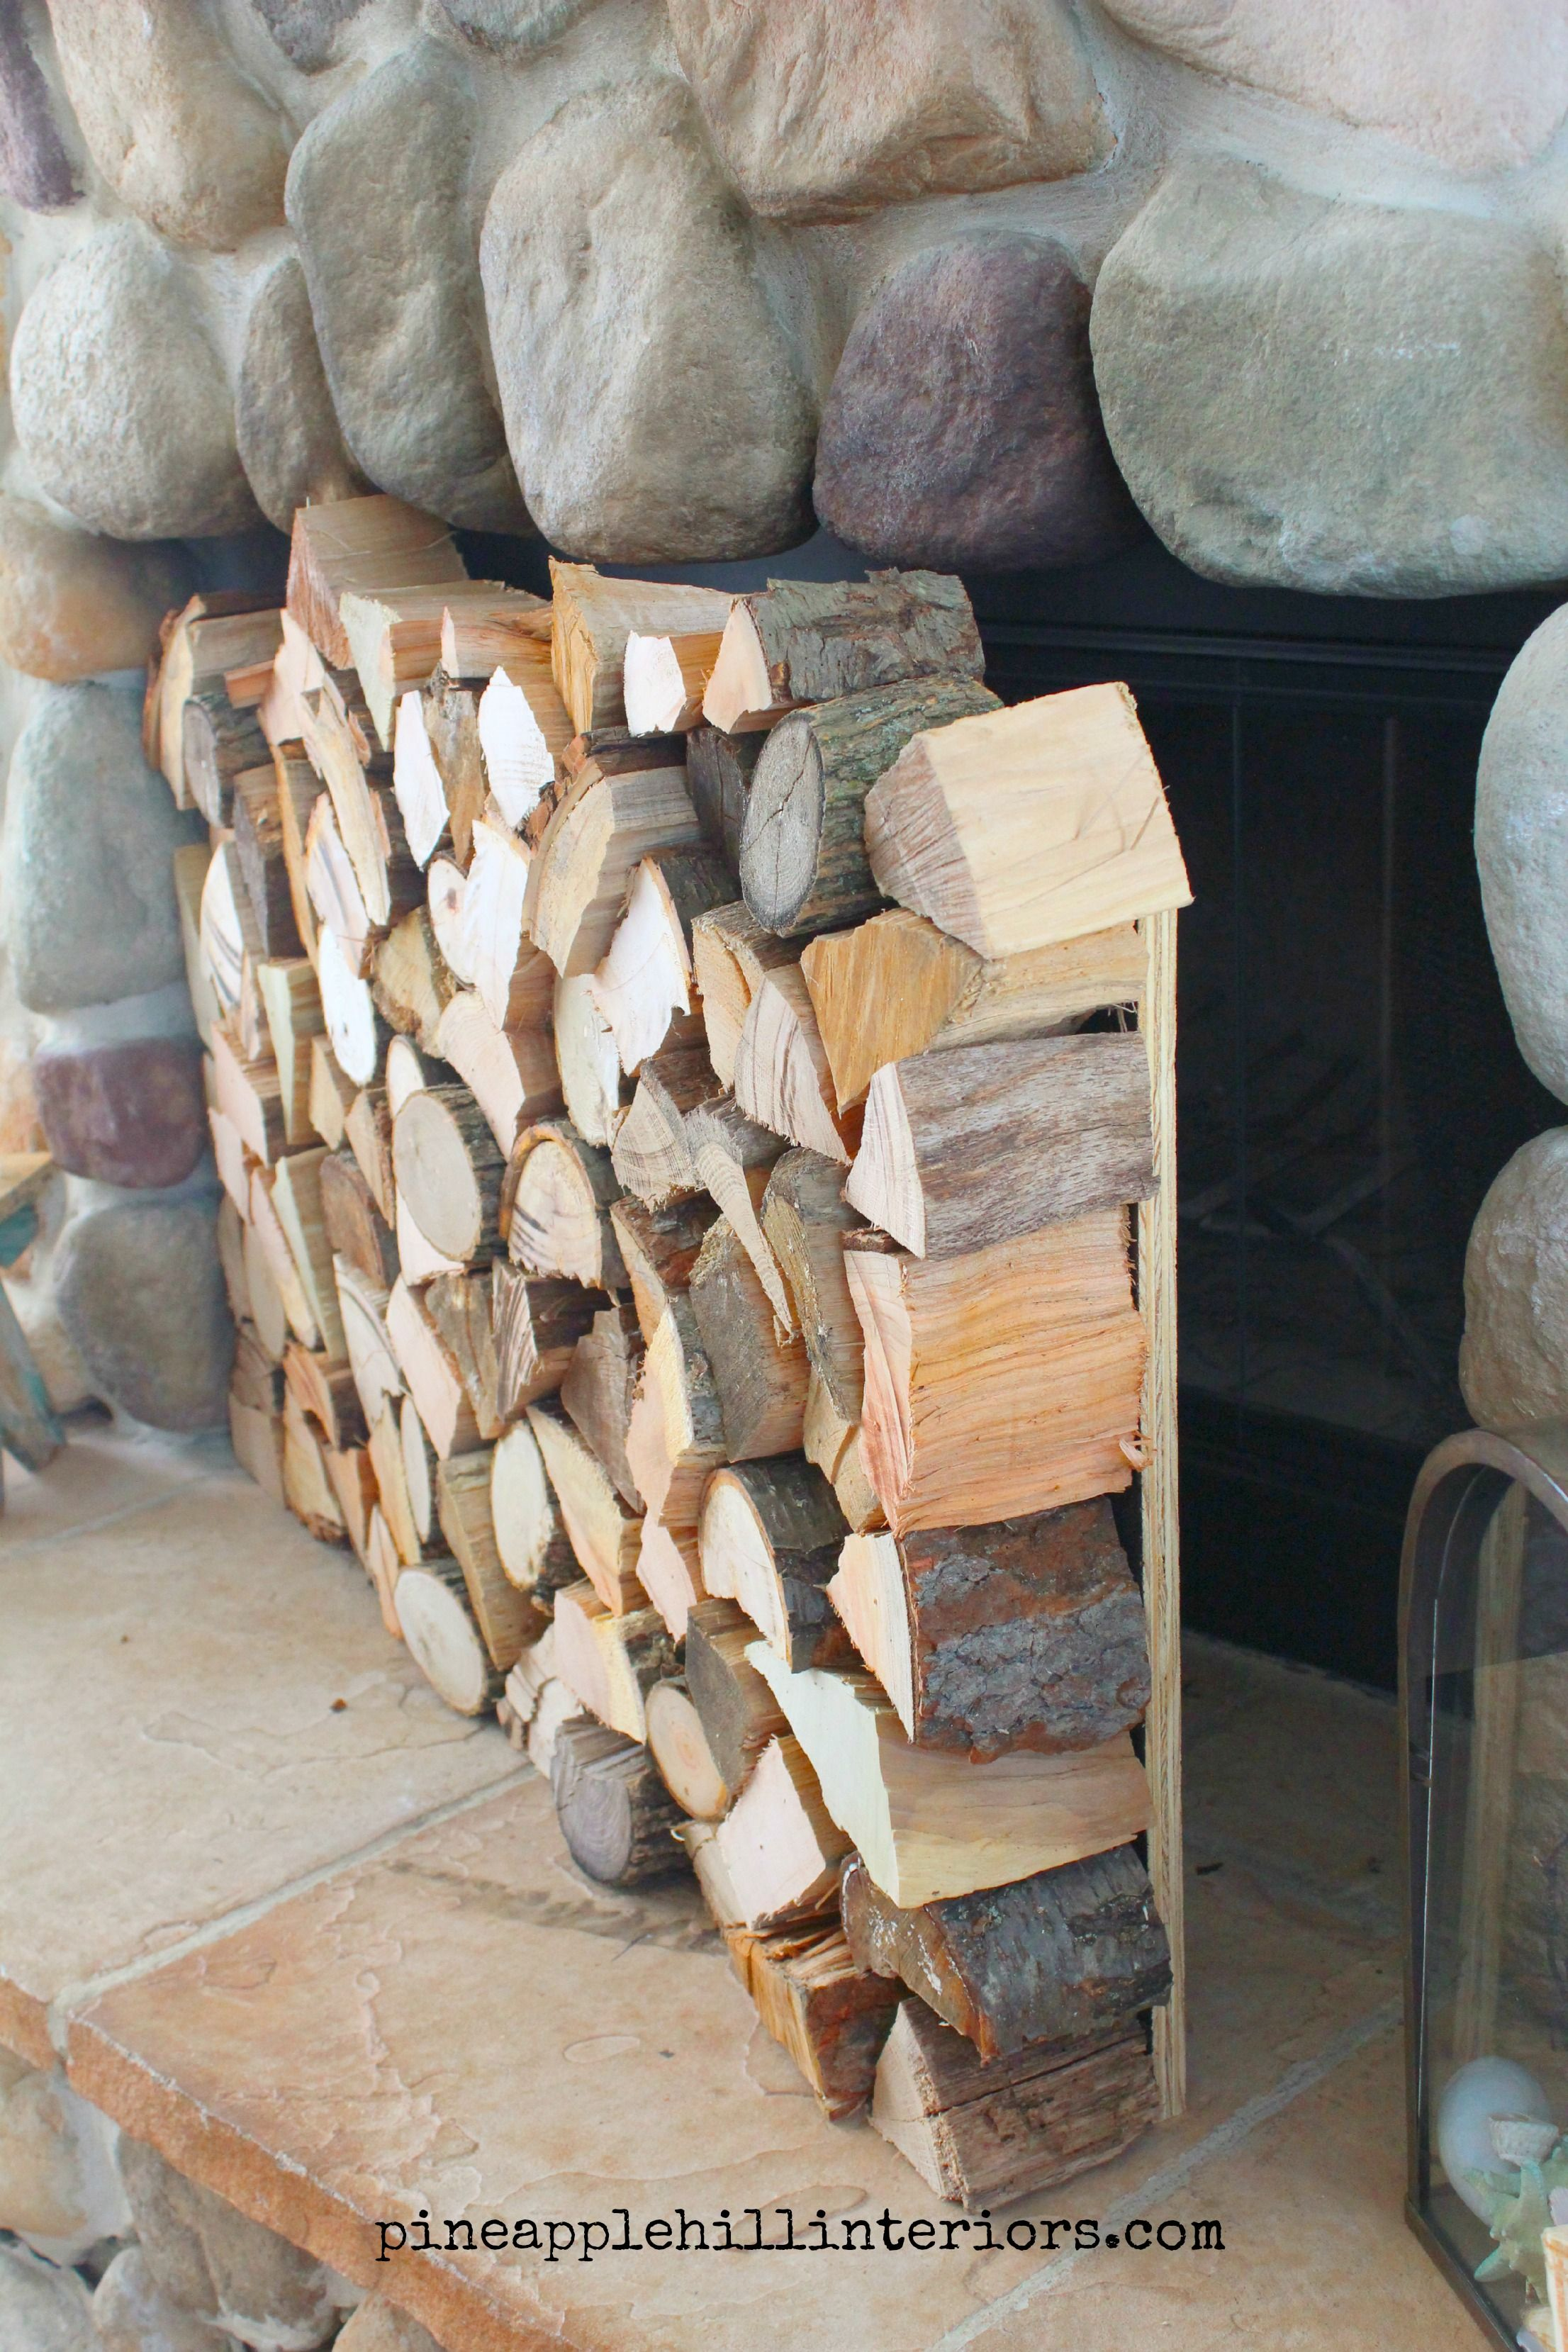 design ideas decorative decorating living for fireplace decorate nonworking decor logs room